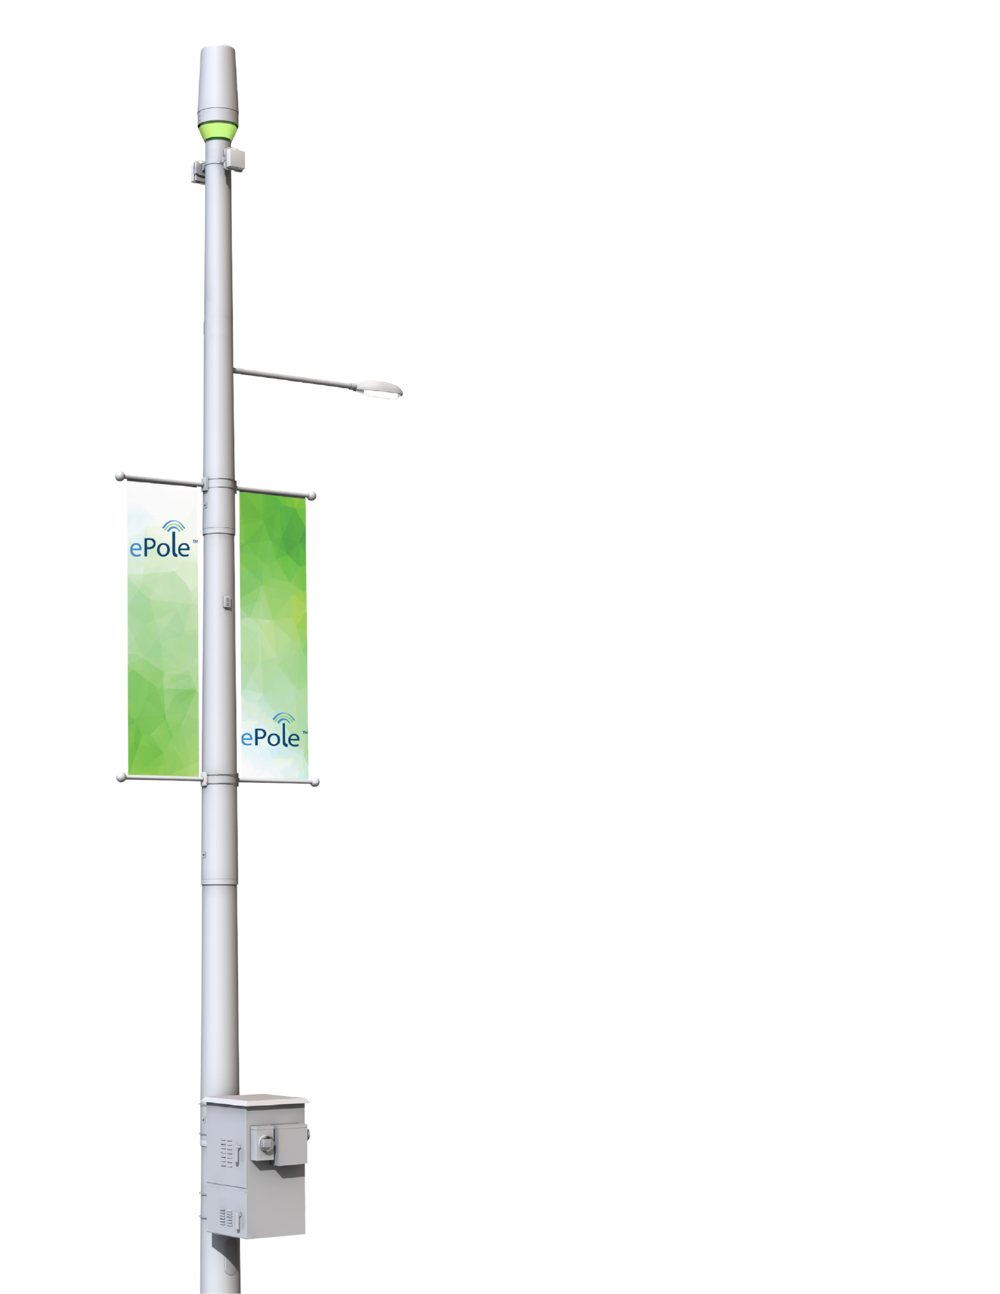 epole, small cell infrastructure